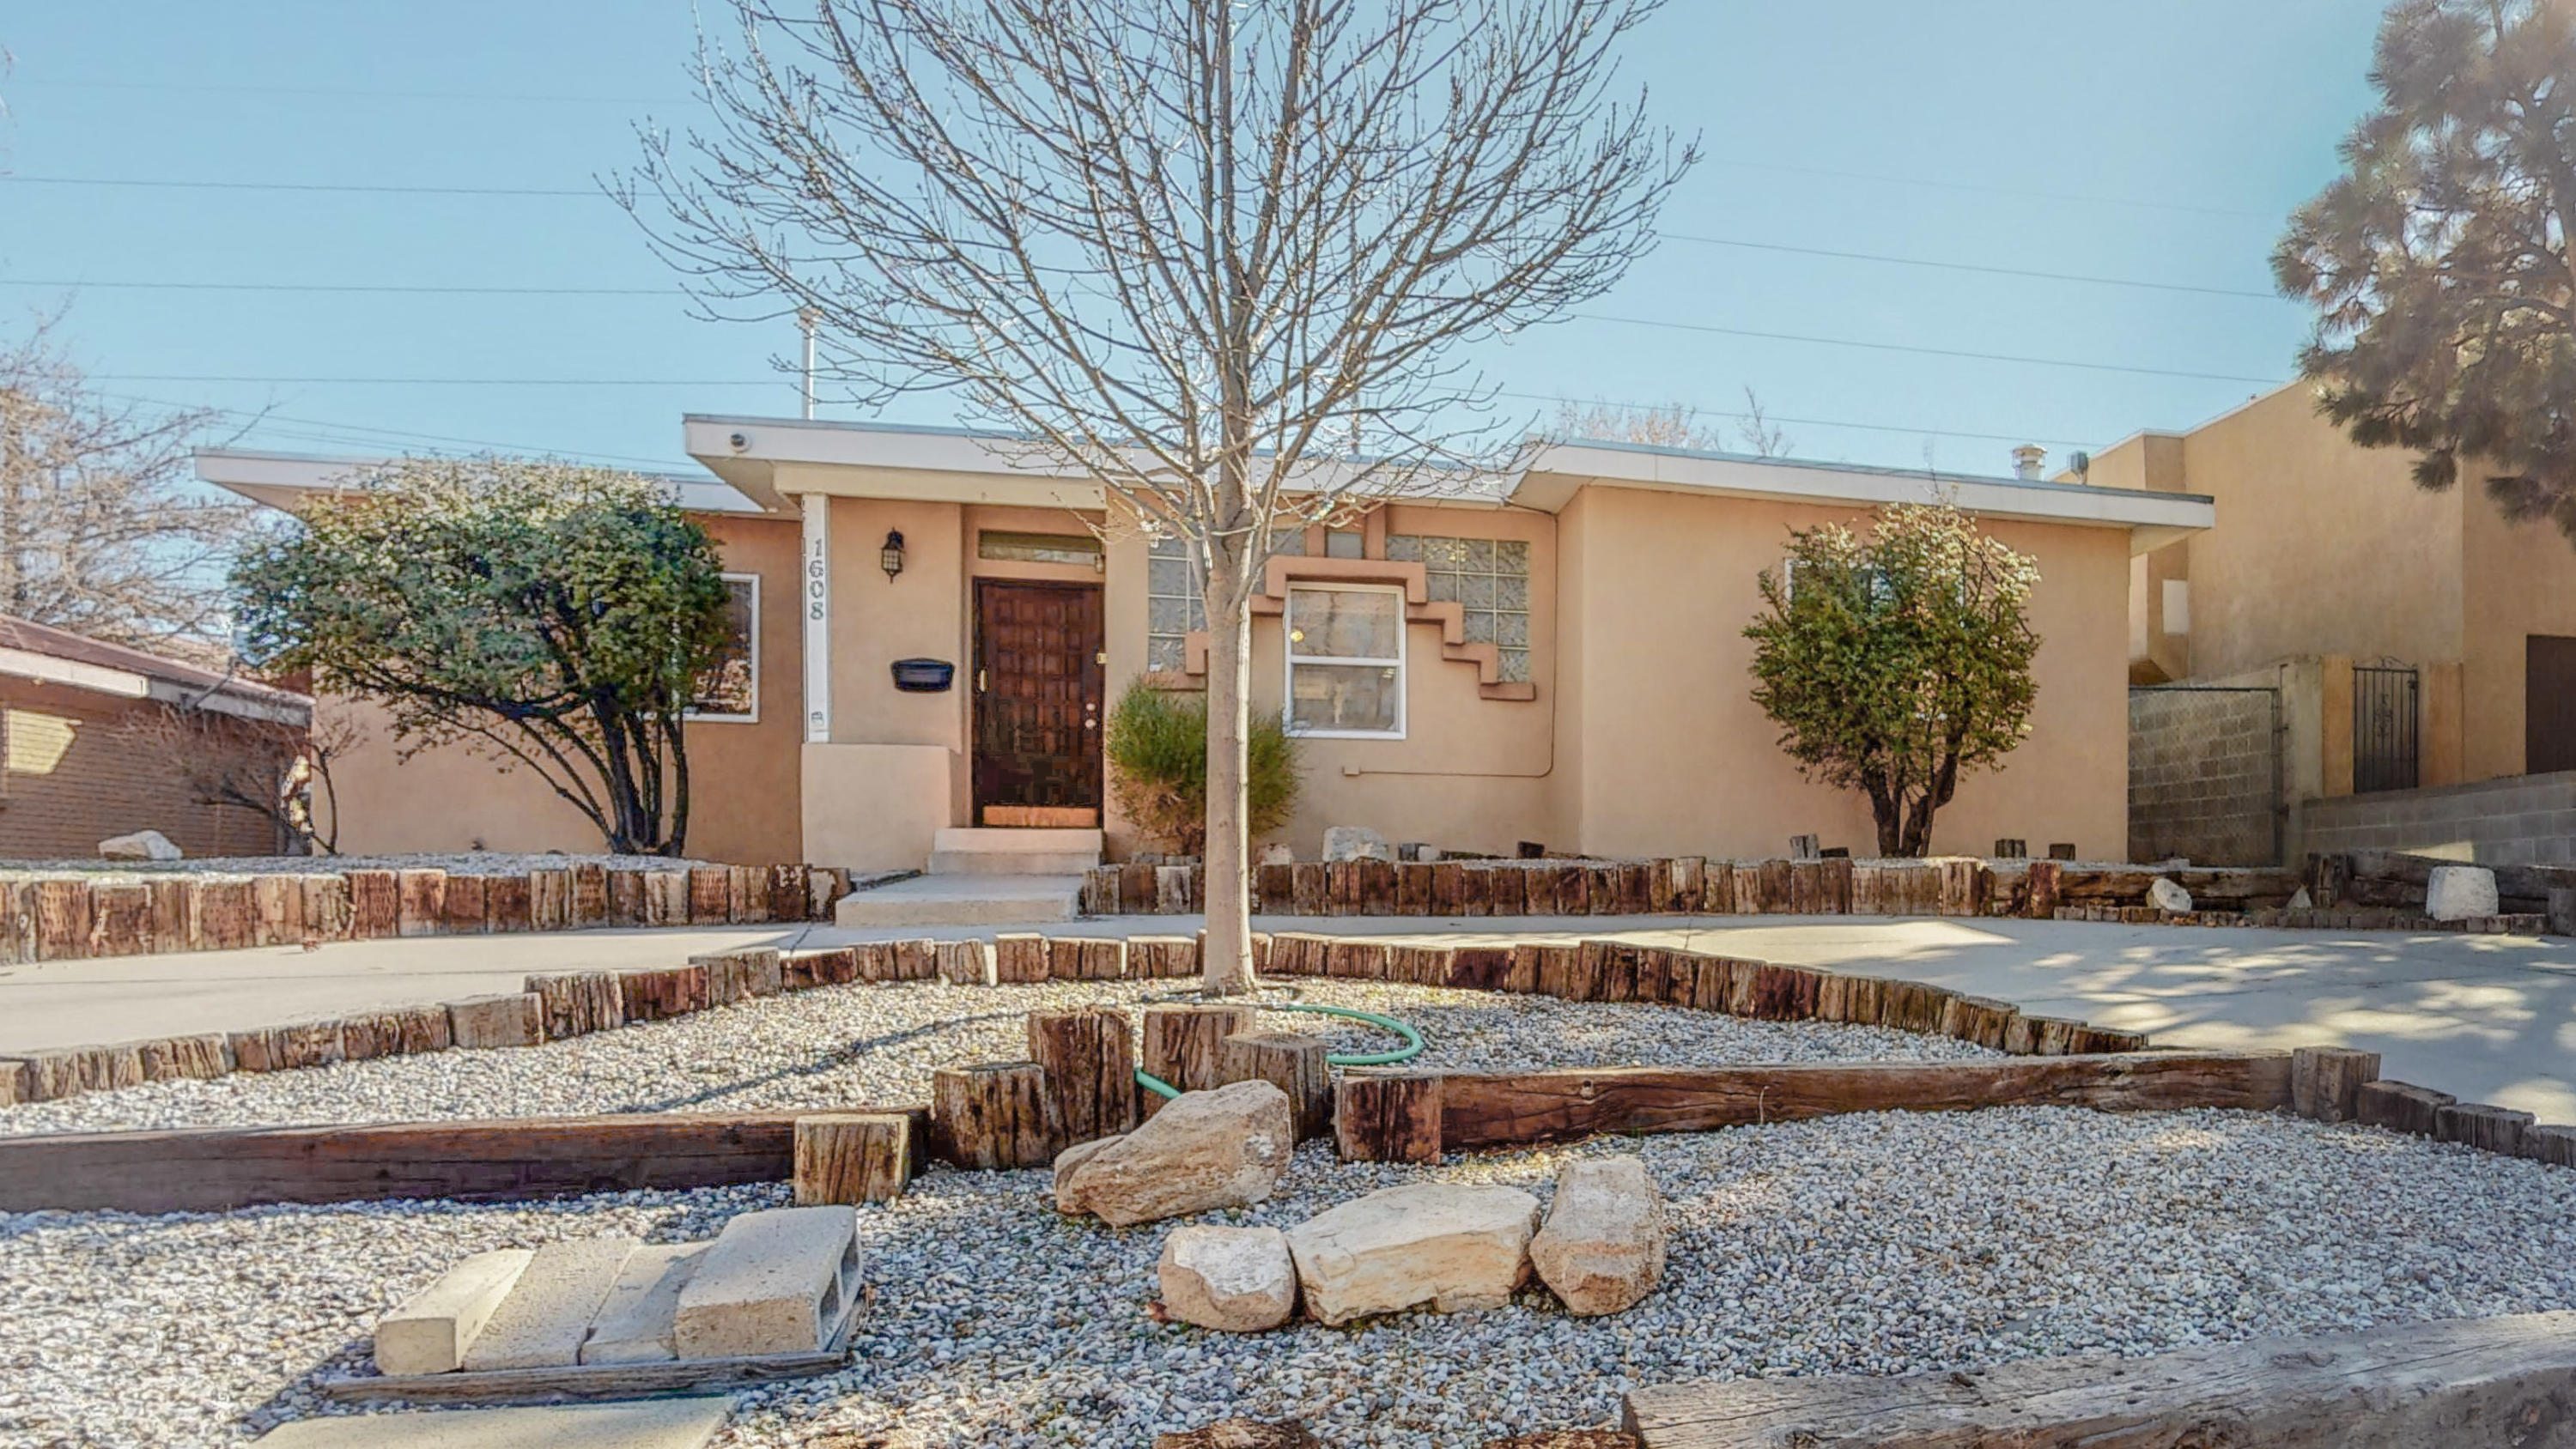 MID CENTURY MODERN W/SW CHARACTER: OPEN FLOORPLAN ON A HUGE LOT!! Awesome location near Big I, walk to Grocery!  Nearly 2000',  4 bed, 3 bath, Huge 2car gar - fits trucks. Gorgeous Wood floors were just refinished!!  +New wood-look vinyl! +  Neutral Tile in kitchen & dining.  NO CARPET!  BRAND NEW STAINLESS STEEL APPLIANCES- being shipped!  Granite tile counters, Brkfst Bar, Custom Cabinets, Pantry, Gas range.  Master Cool Evap. +Refrig/Heat combo only  in Office/Bdr. W/D  included- no warrantee.  2 en-suite bdrs plus 2 others share a full ba w/2 sinks. TPO Roof. Recent stucco work.  Large  fenced lot- w/ drive-thru back gate & attached garage.  Huge storage bldg included!!  Lg covered Patio-may not be permitted- but great shady space!  Circle Drive!  OFFERS WILL BE VIEWED Sun 2/28, 4PM.